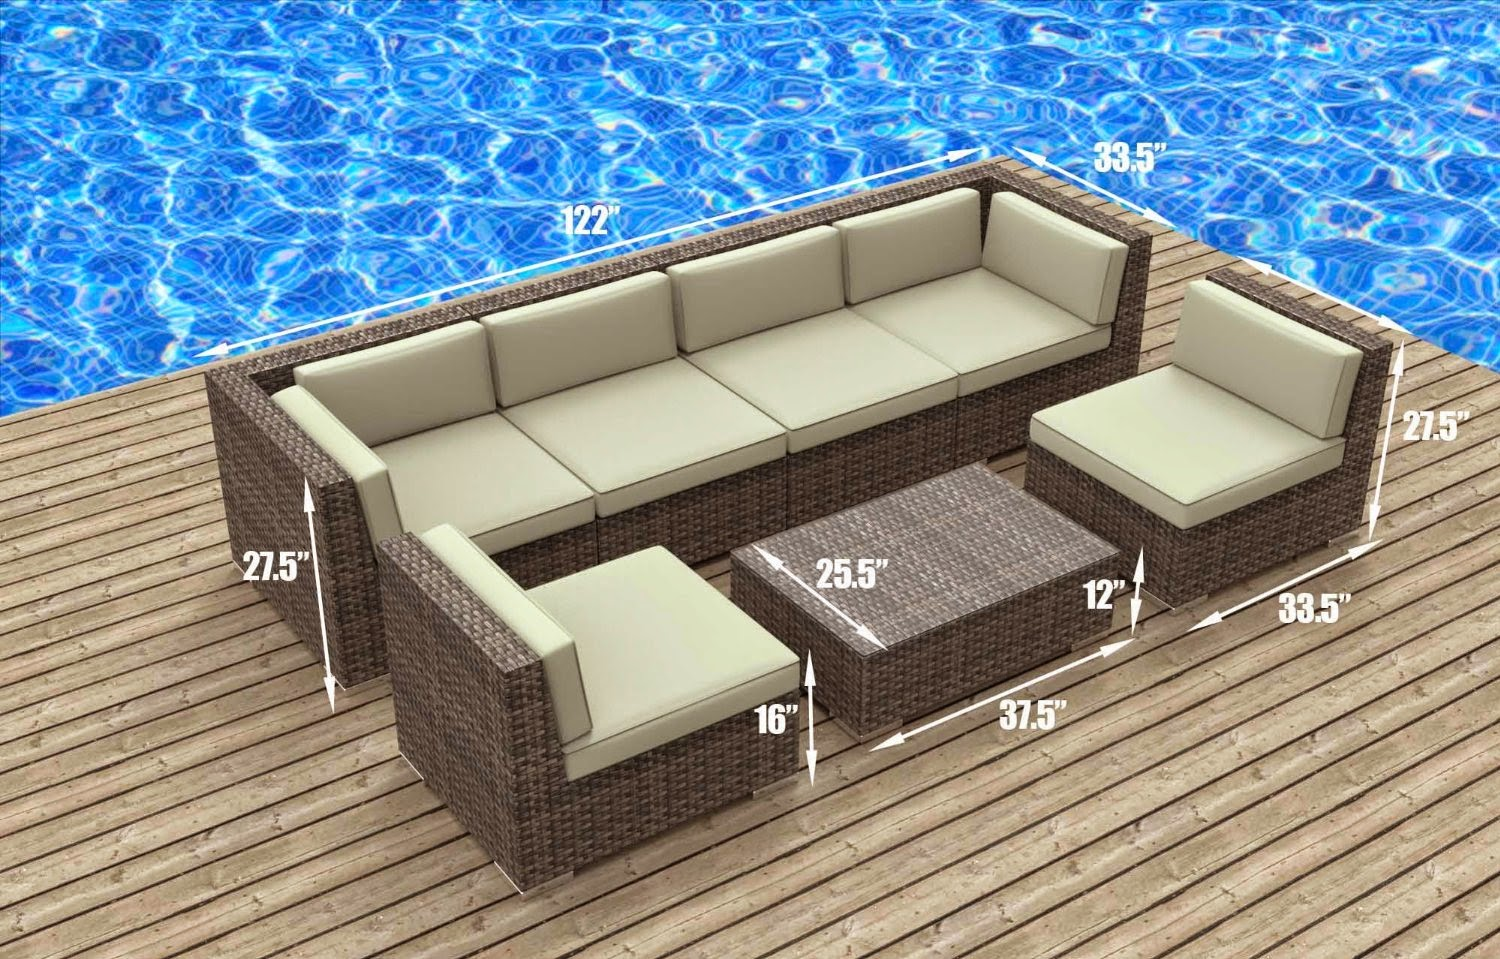 Urban furnishing modern outdoor backyard wicker rattan for Outdoor wicker furniture